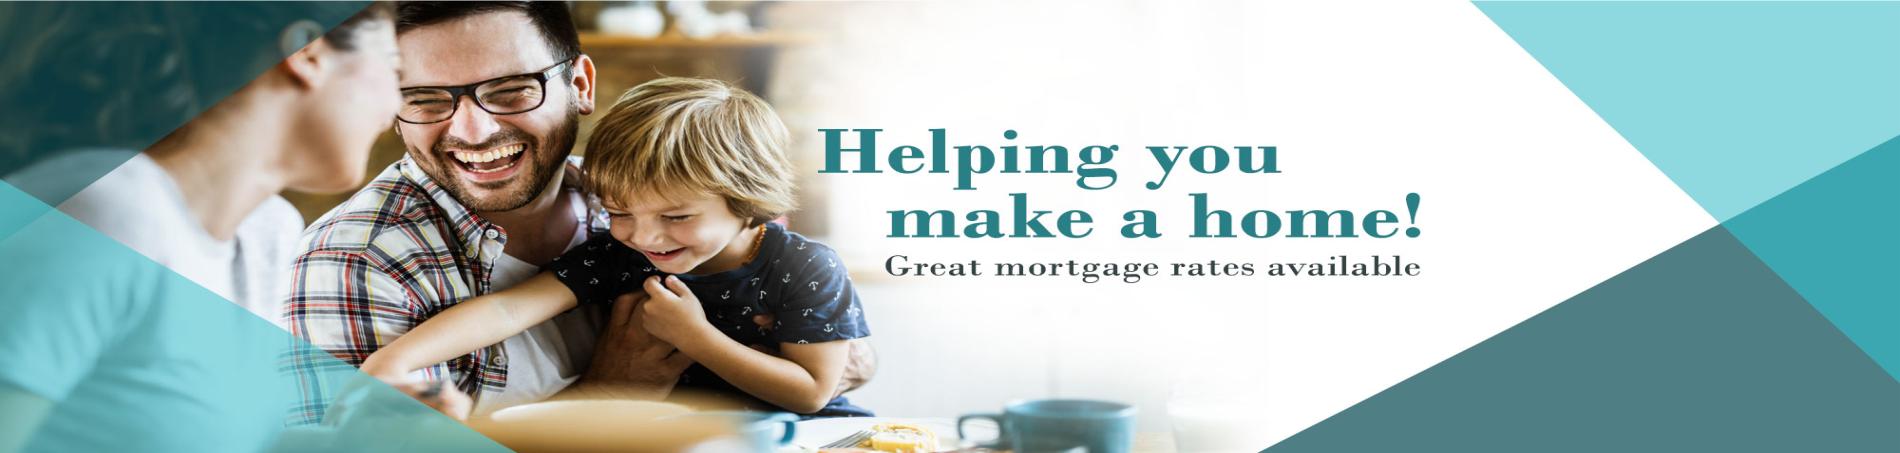 Helping You Make a home! Great Mortgage Rates Available!